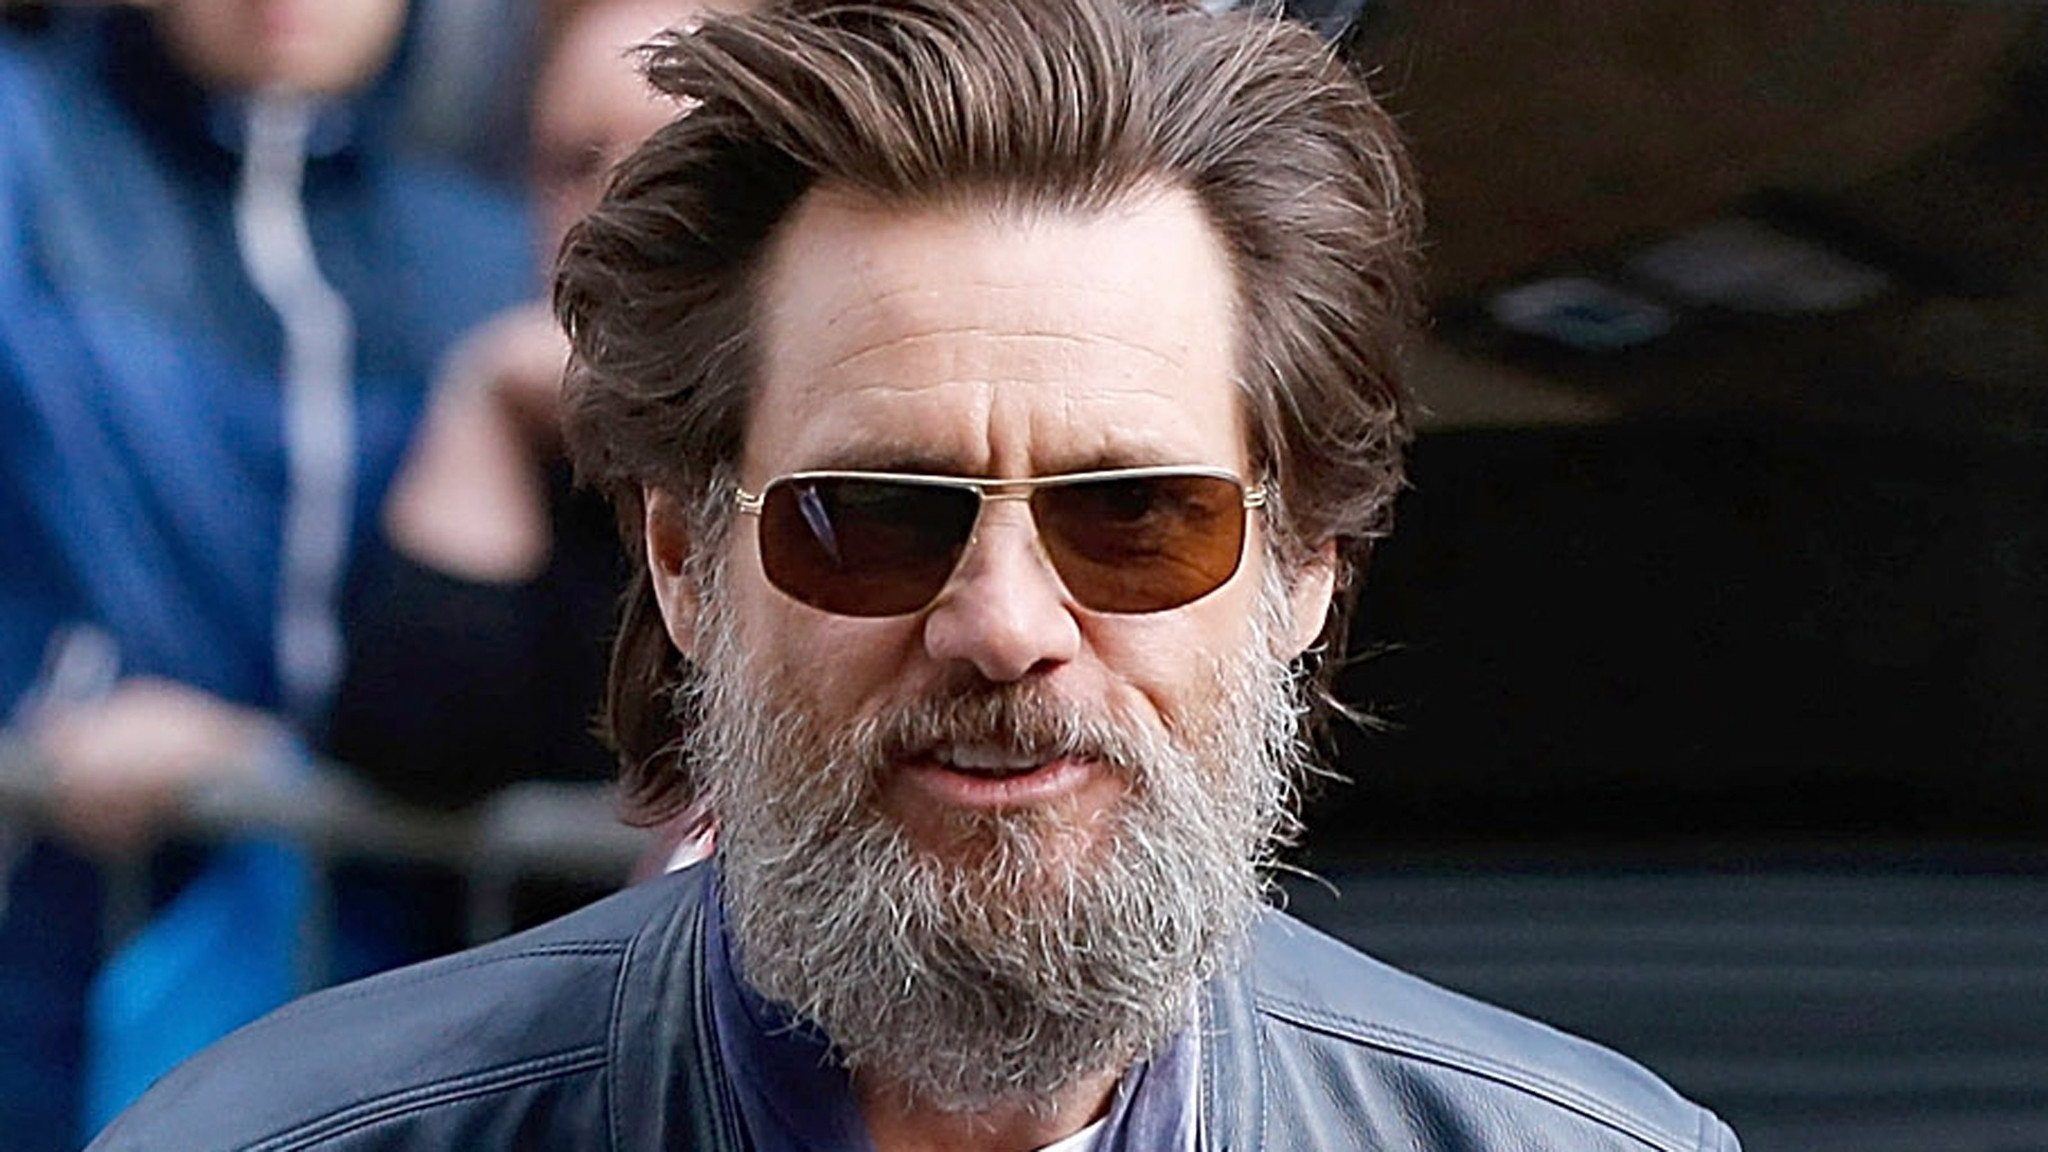 Jim Carrey, Cathriona White were just taking a 'breather ... Jim Carrey